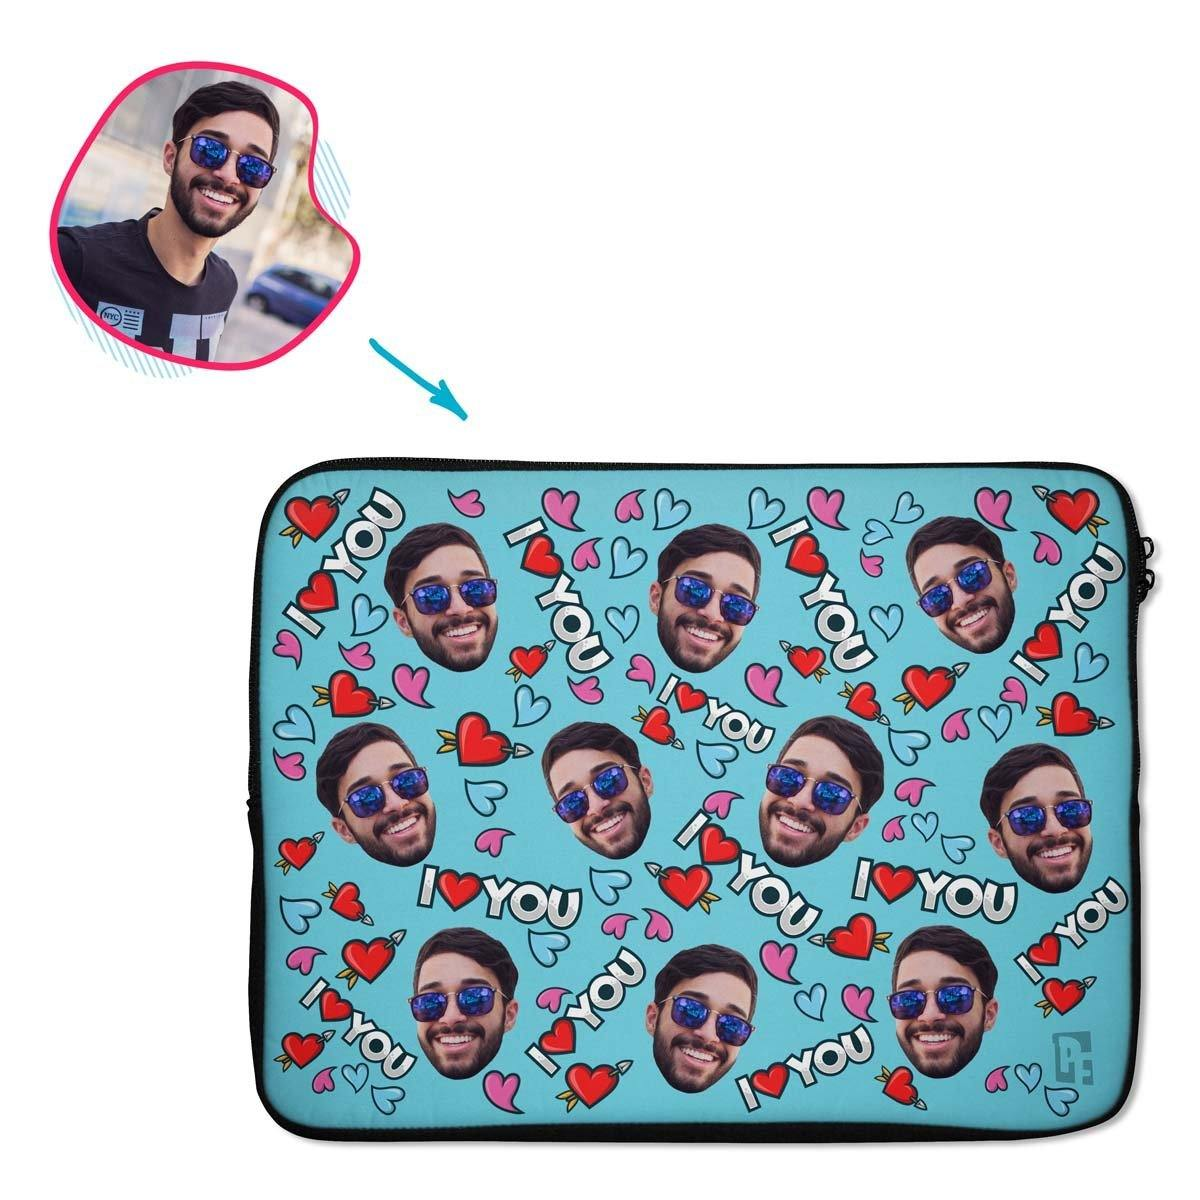 blue Love You laptop sleeve personalized with photo of face printed on them